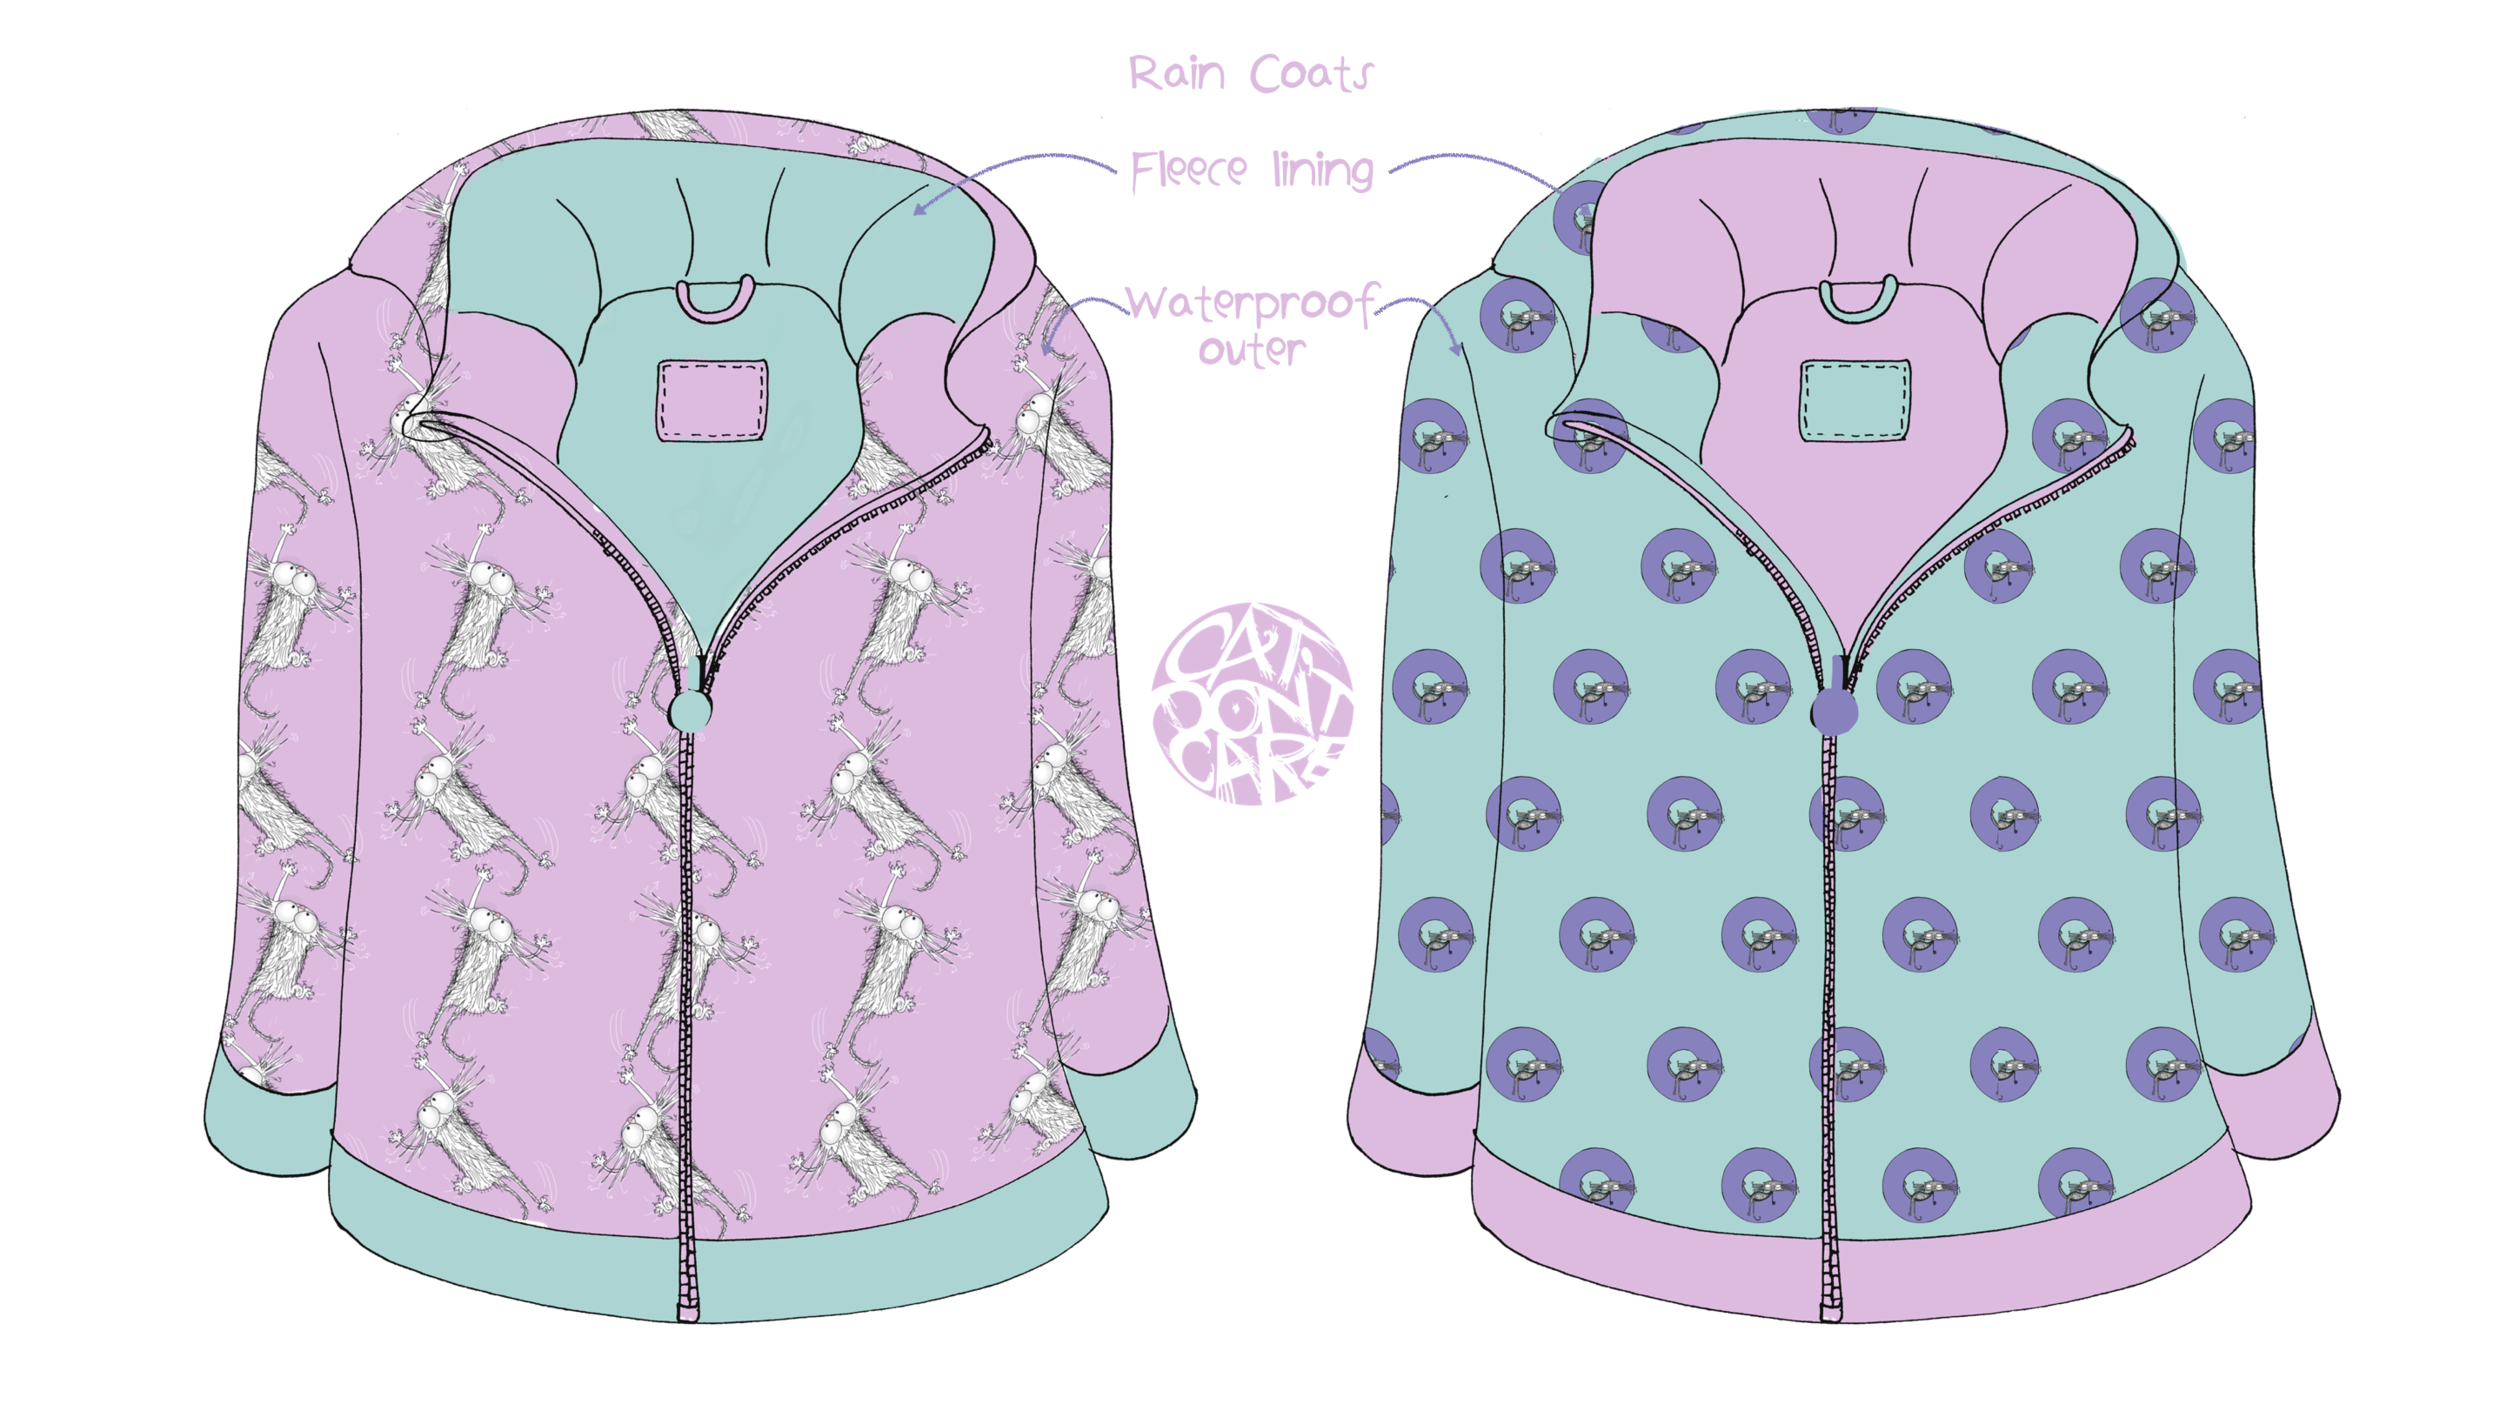 CAT DONT CARE | RAINCOATS | NATALIE PALMER SUTTON | ILLUSTRATION | GIFTS FOR CRAZY CAT LOVERS